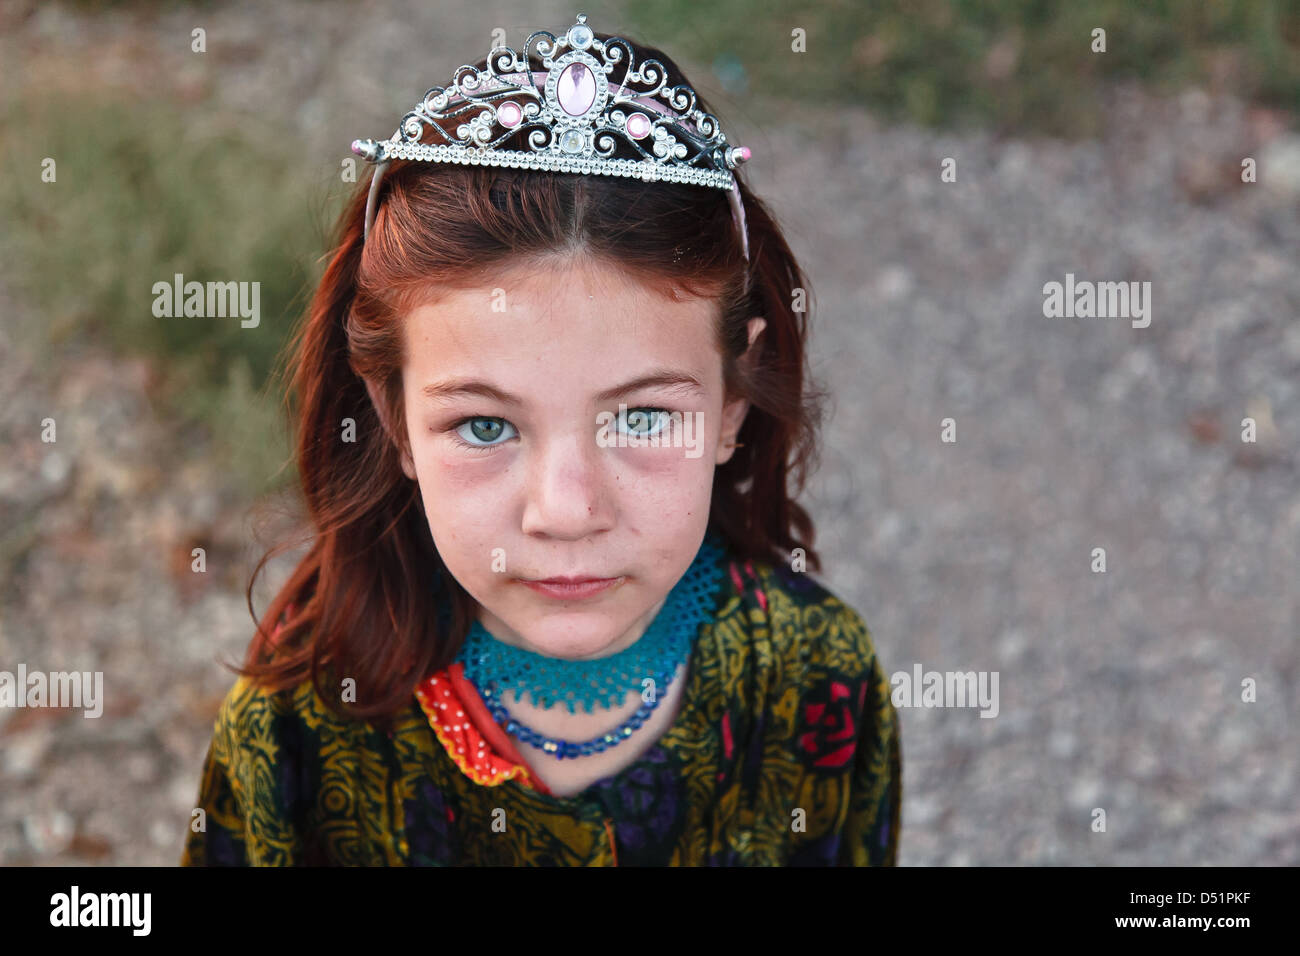 Afghan girl refugee in Iran - Stock Image